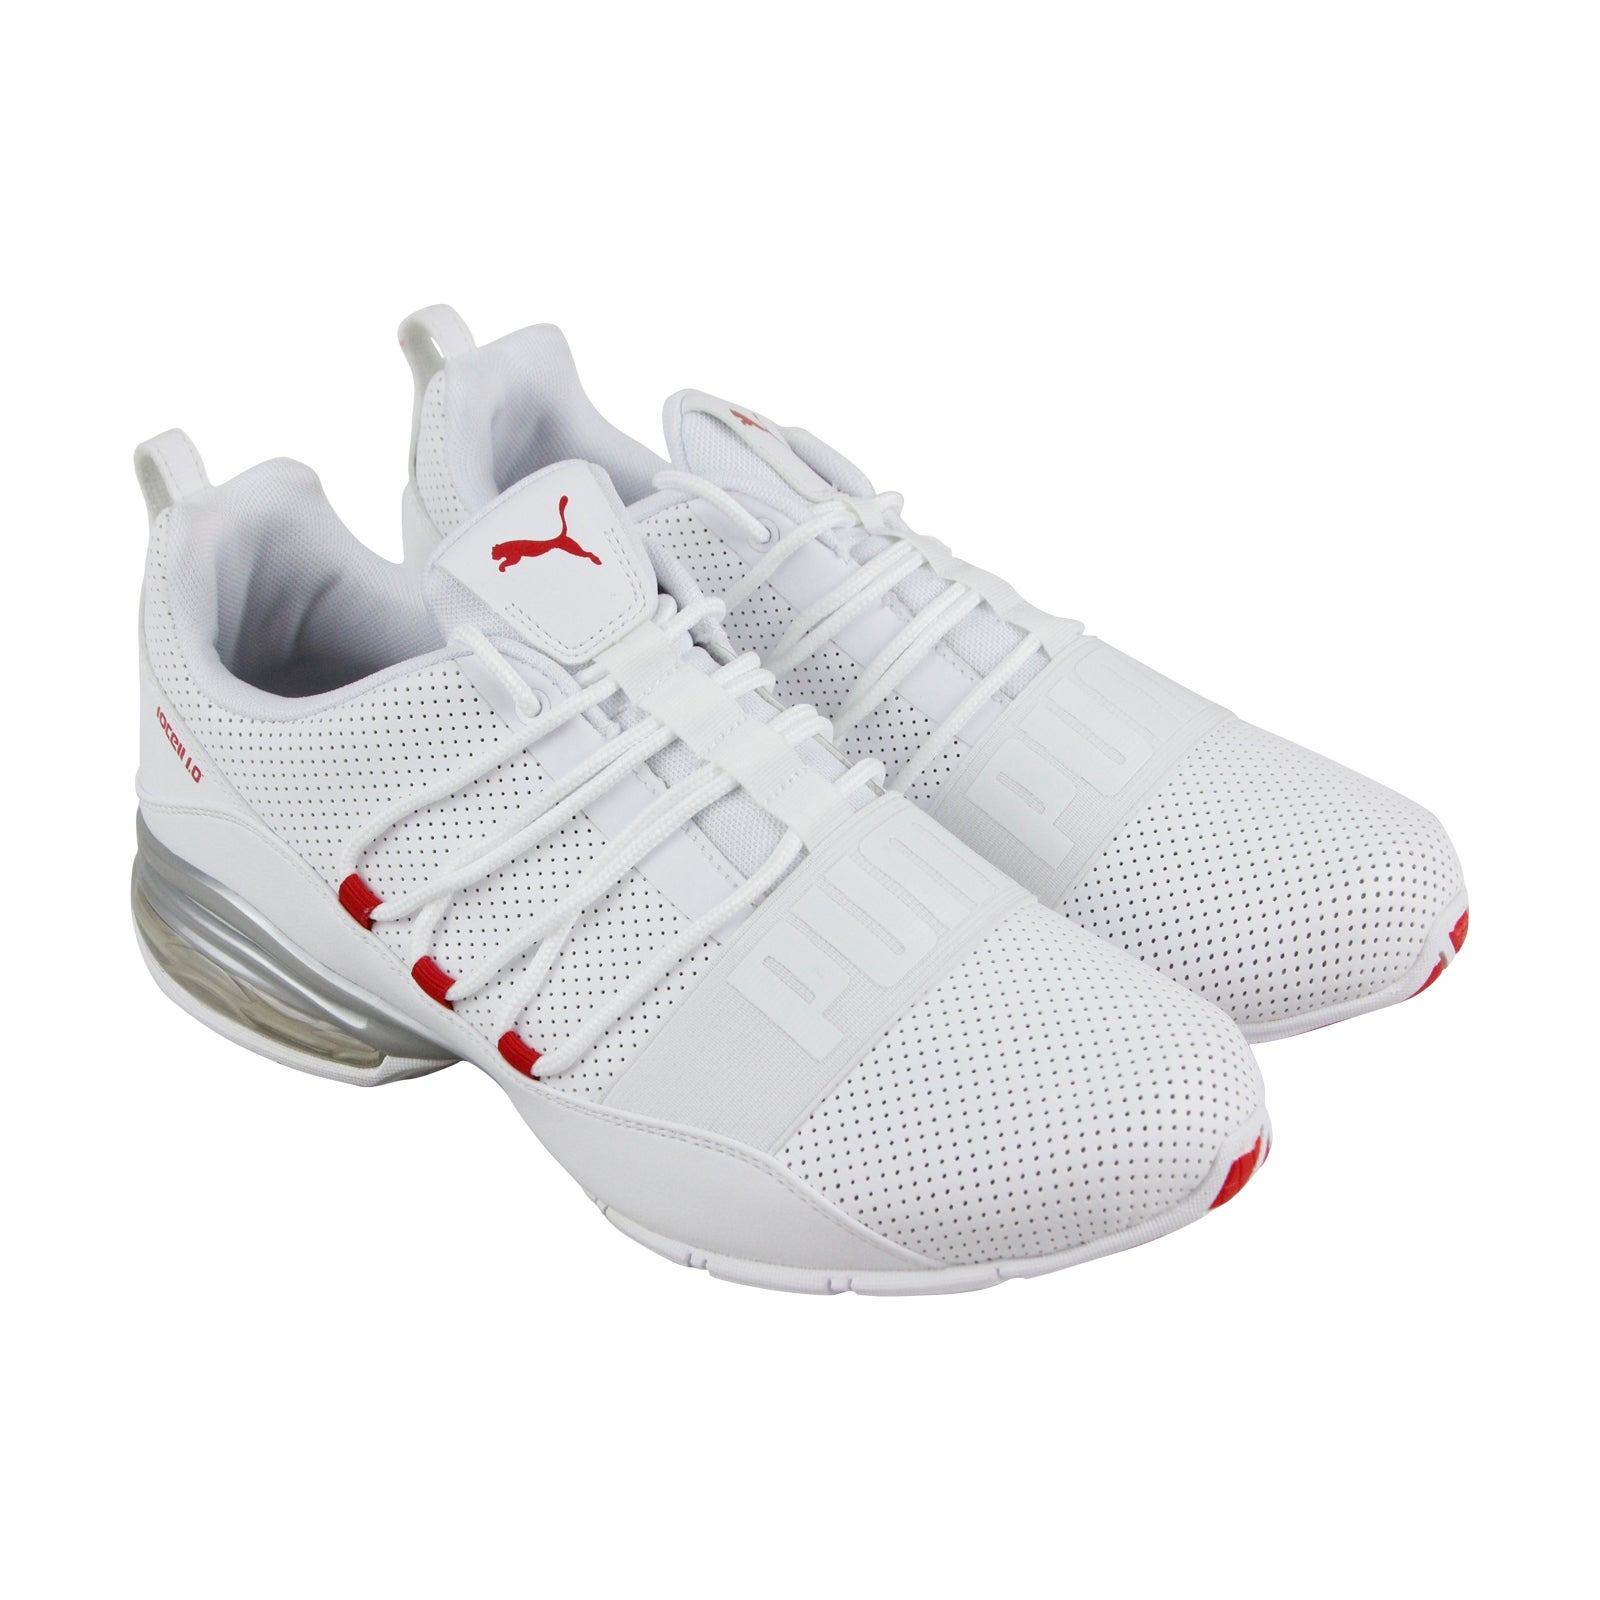 a78a13a3e5c88c Puma Cell Regulate Sl Mens White Leather Athletic Lace Up Running Shoes